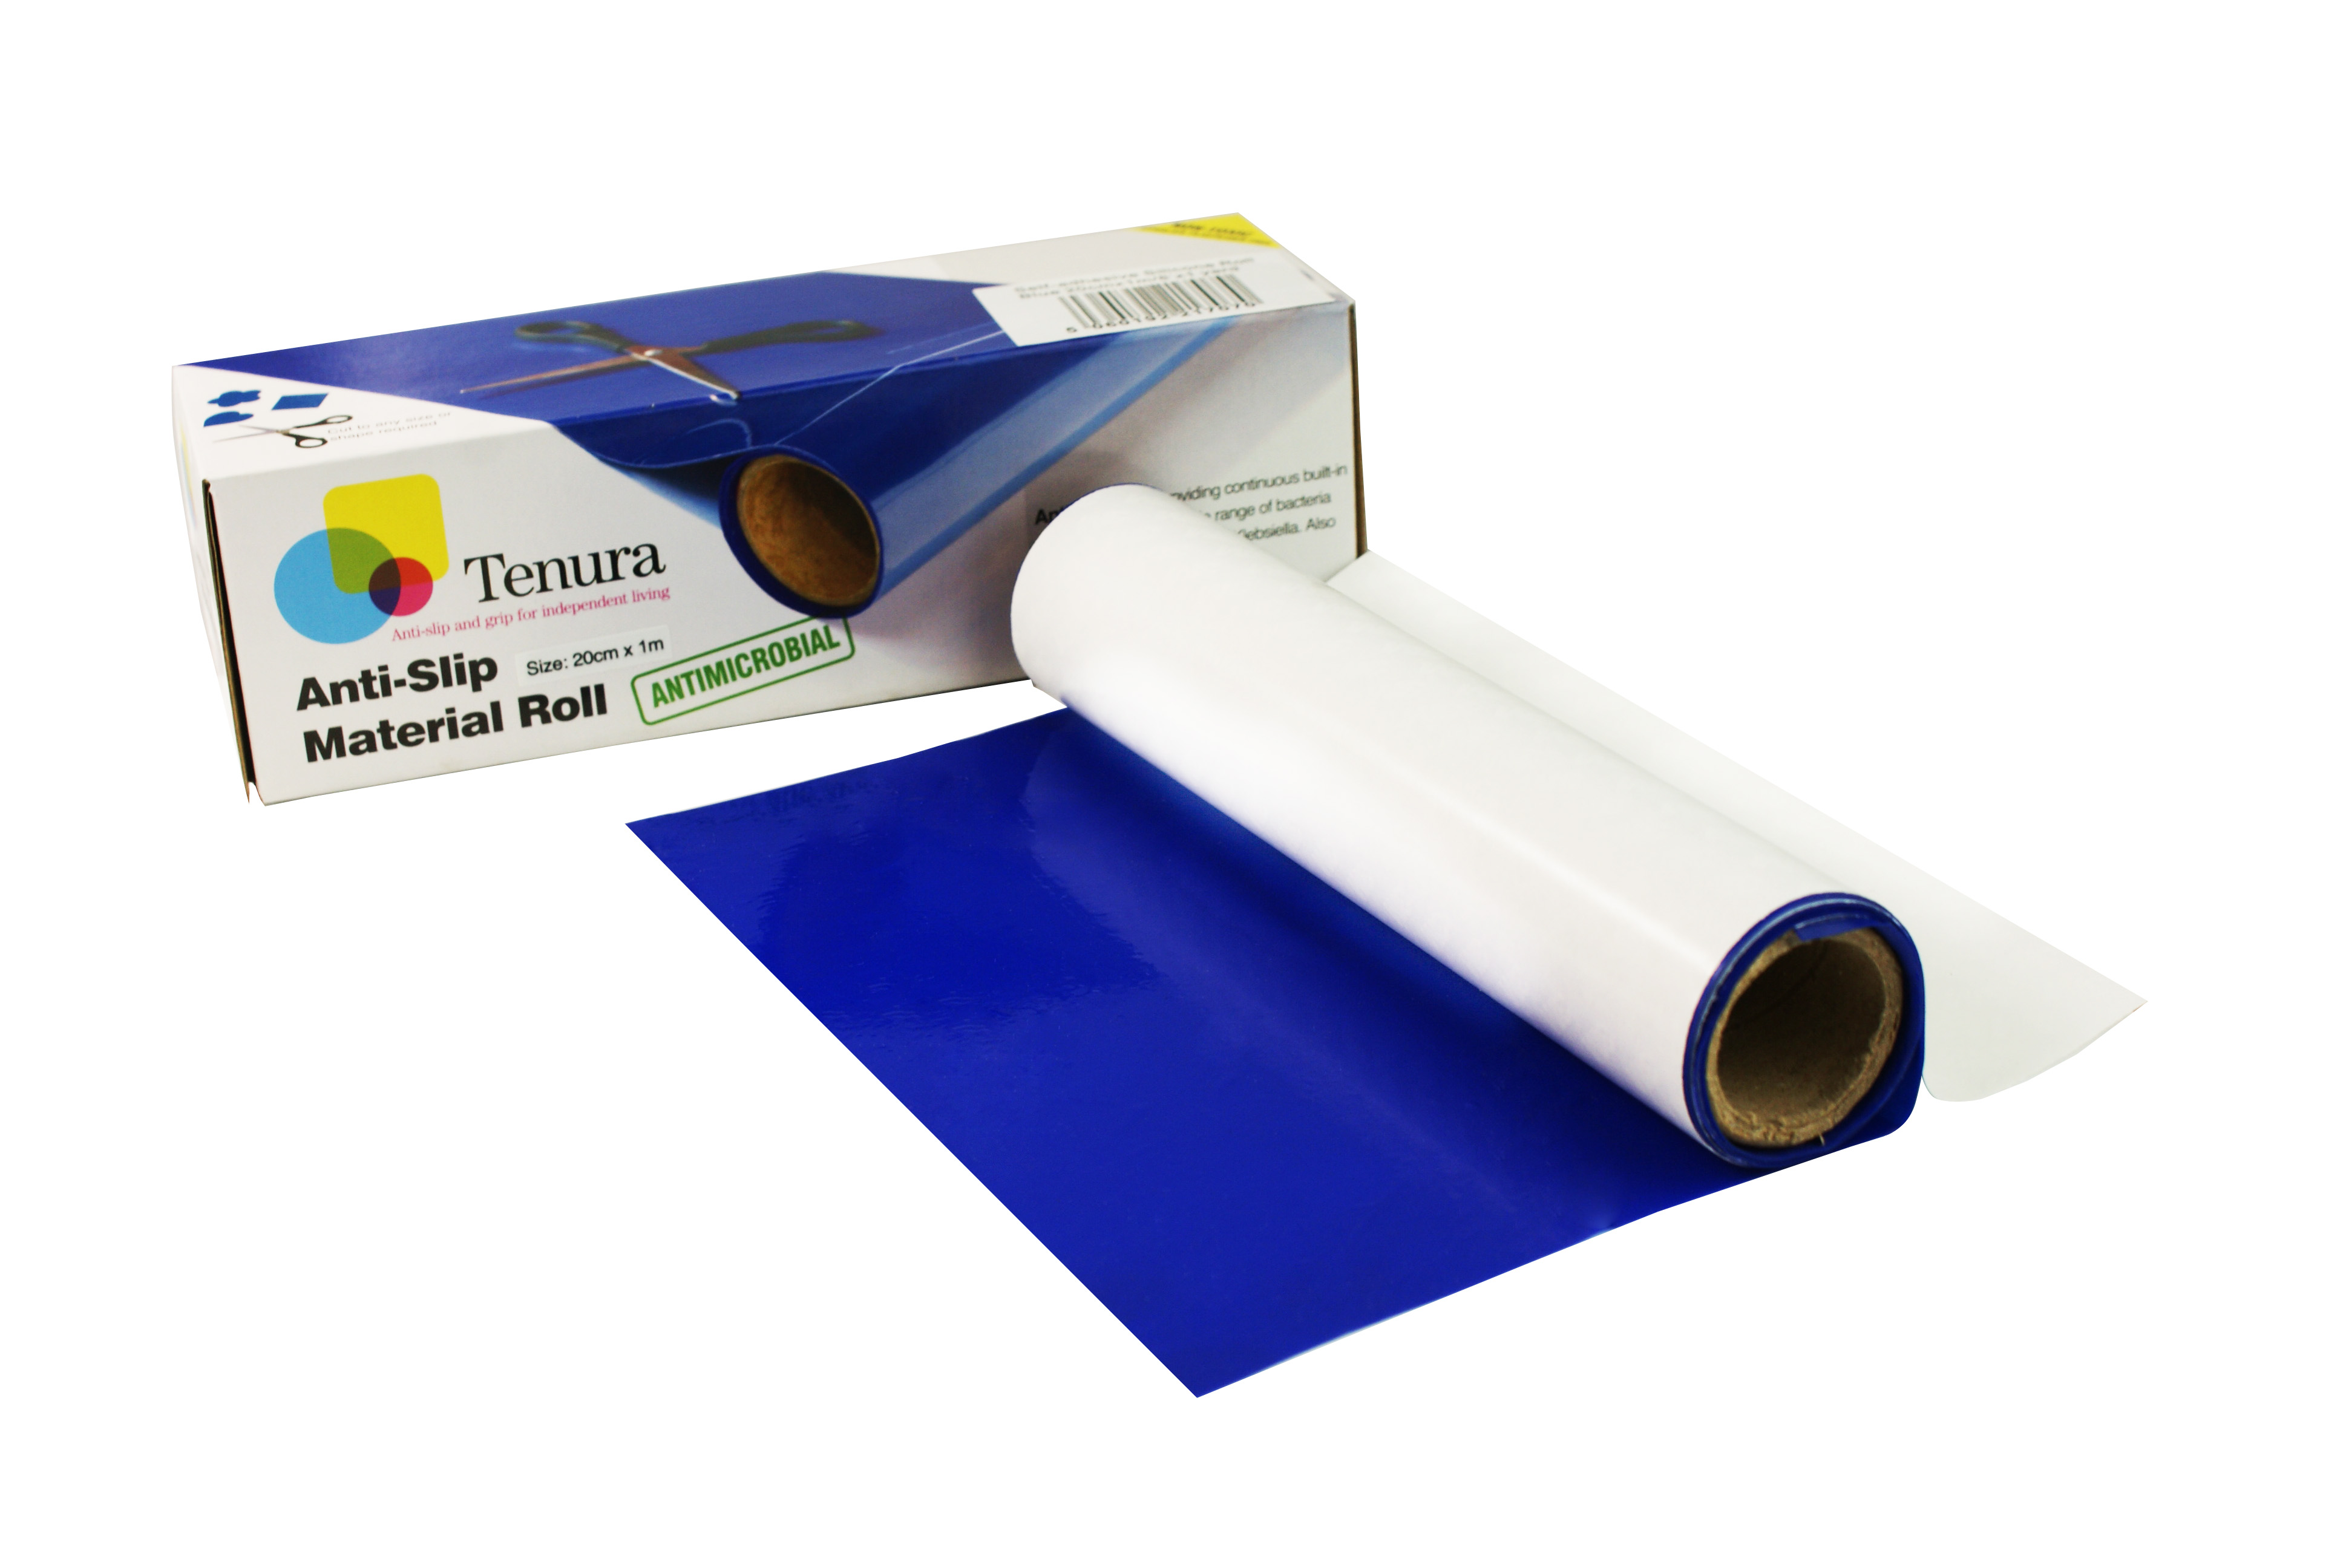 Tenura self adhesive non slip silicone reels are now available